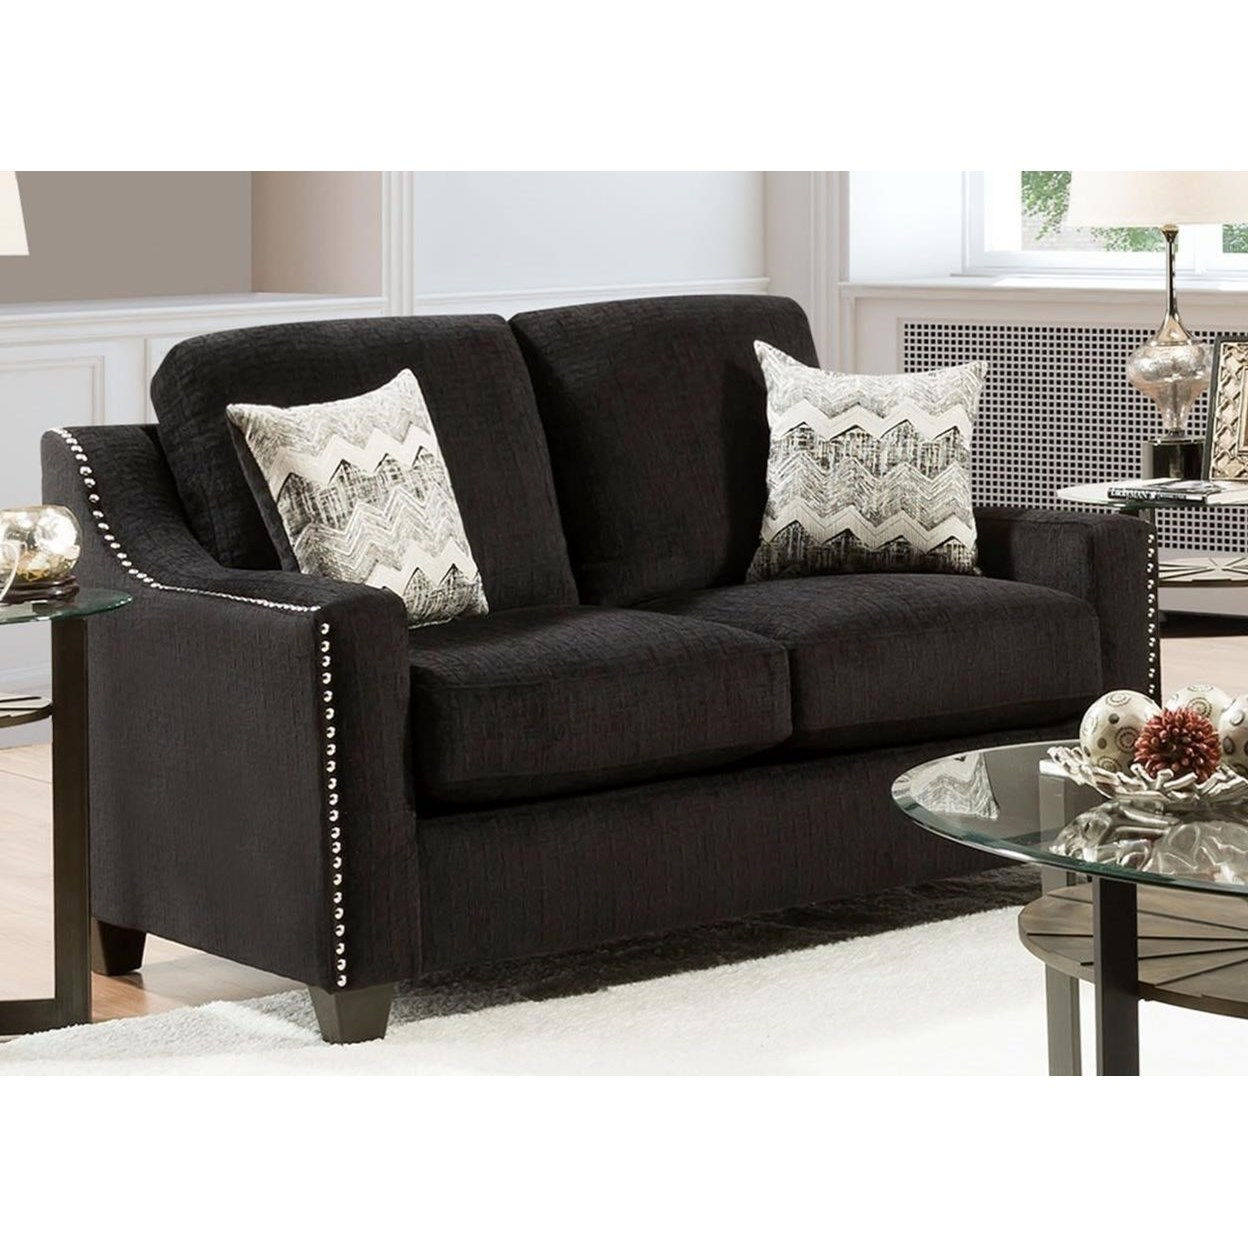 3470 Loveseat by Peak Living at Prime Brothers Furniture